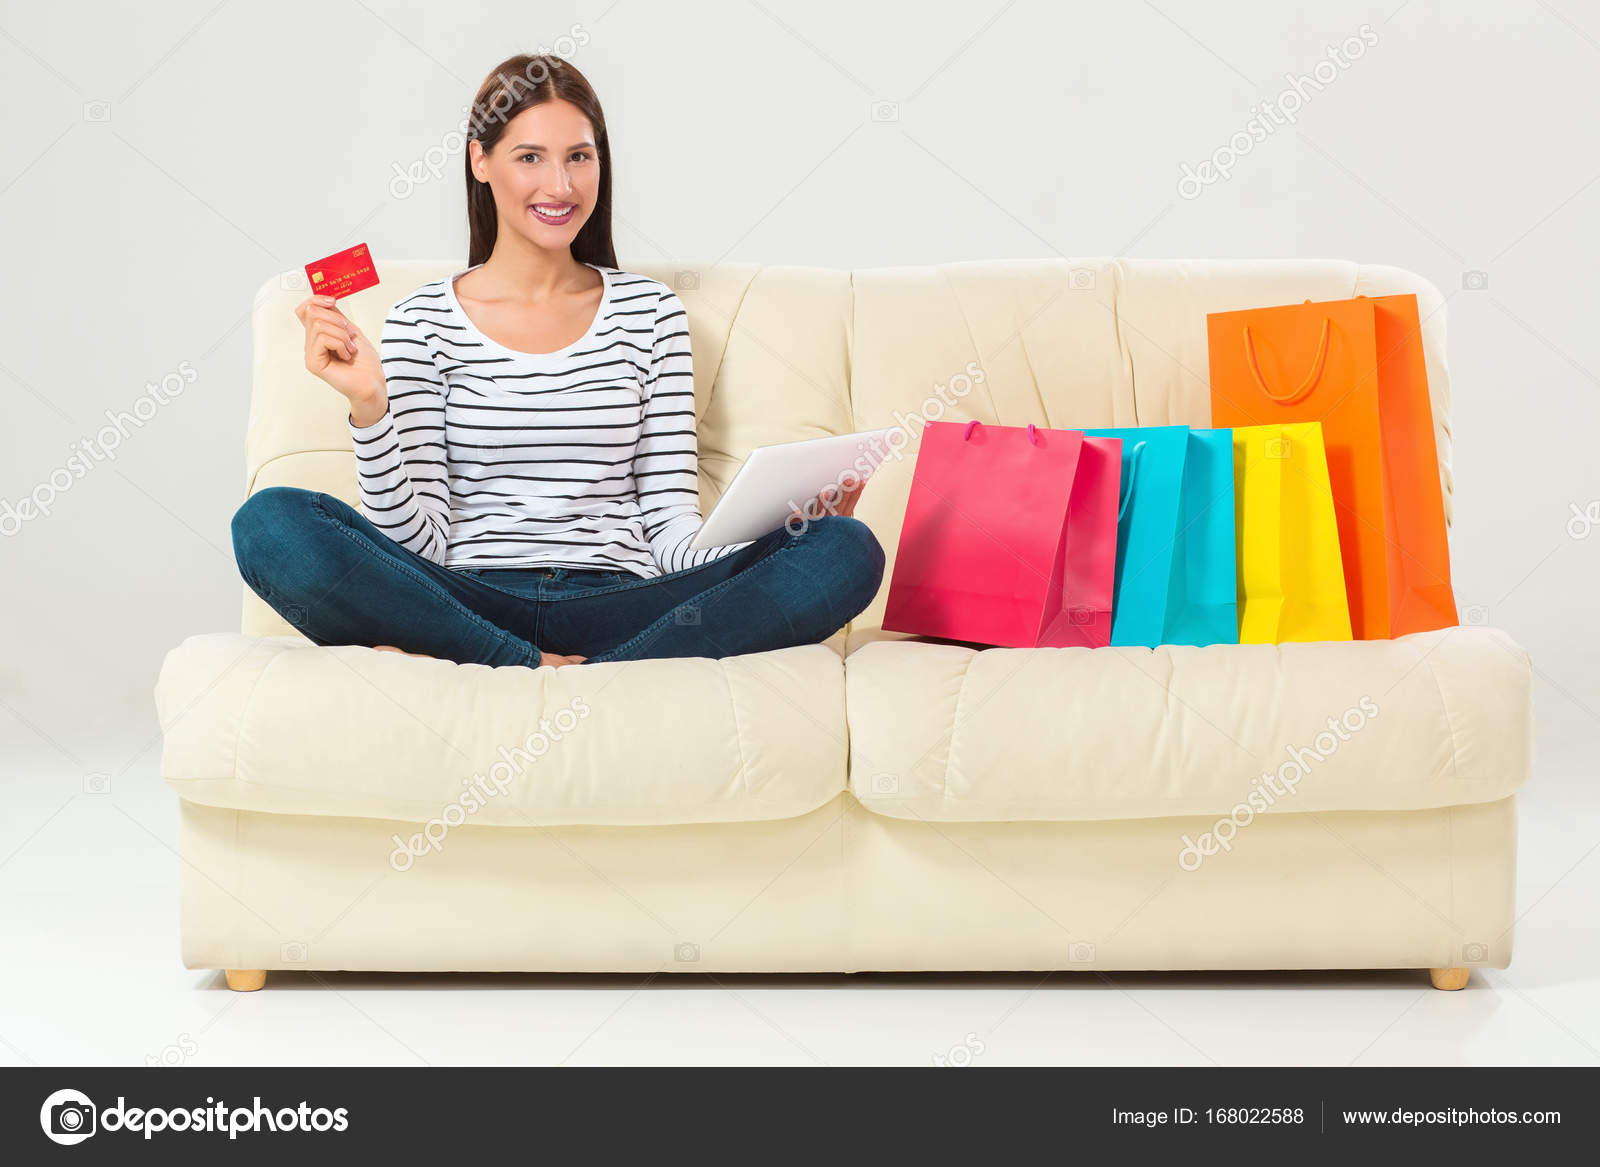 Is buying a research paper online safe